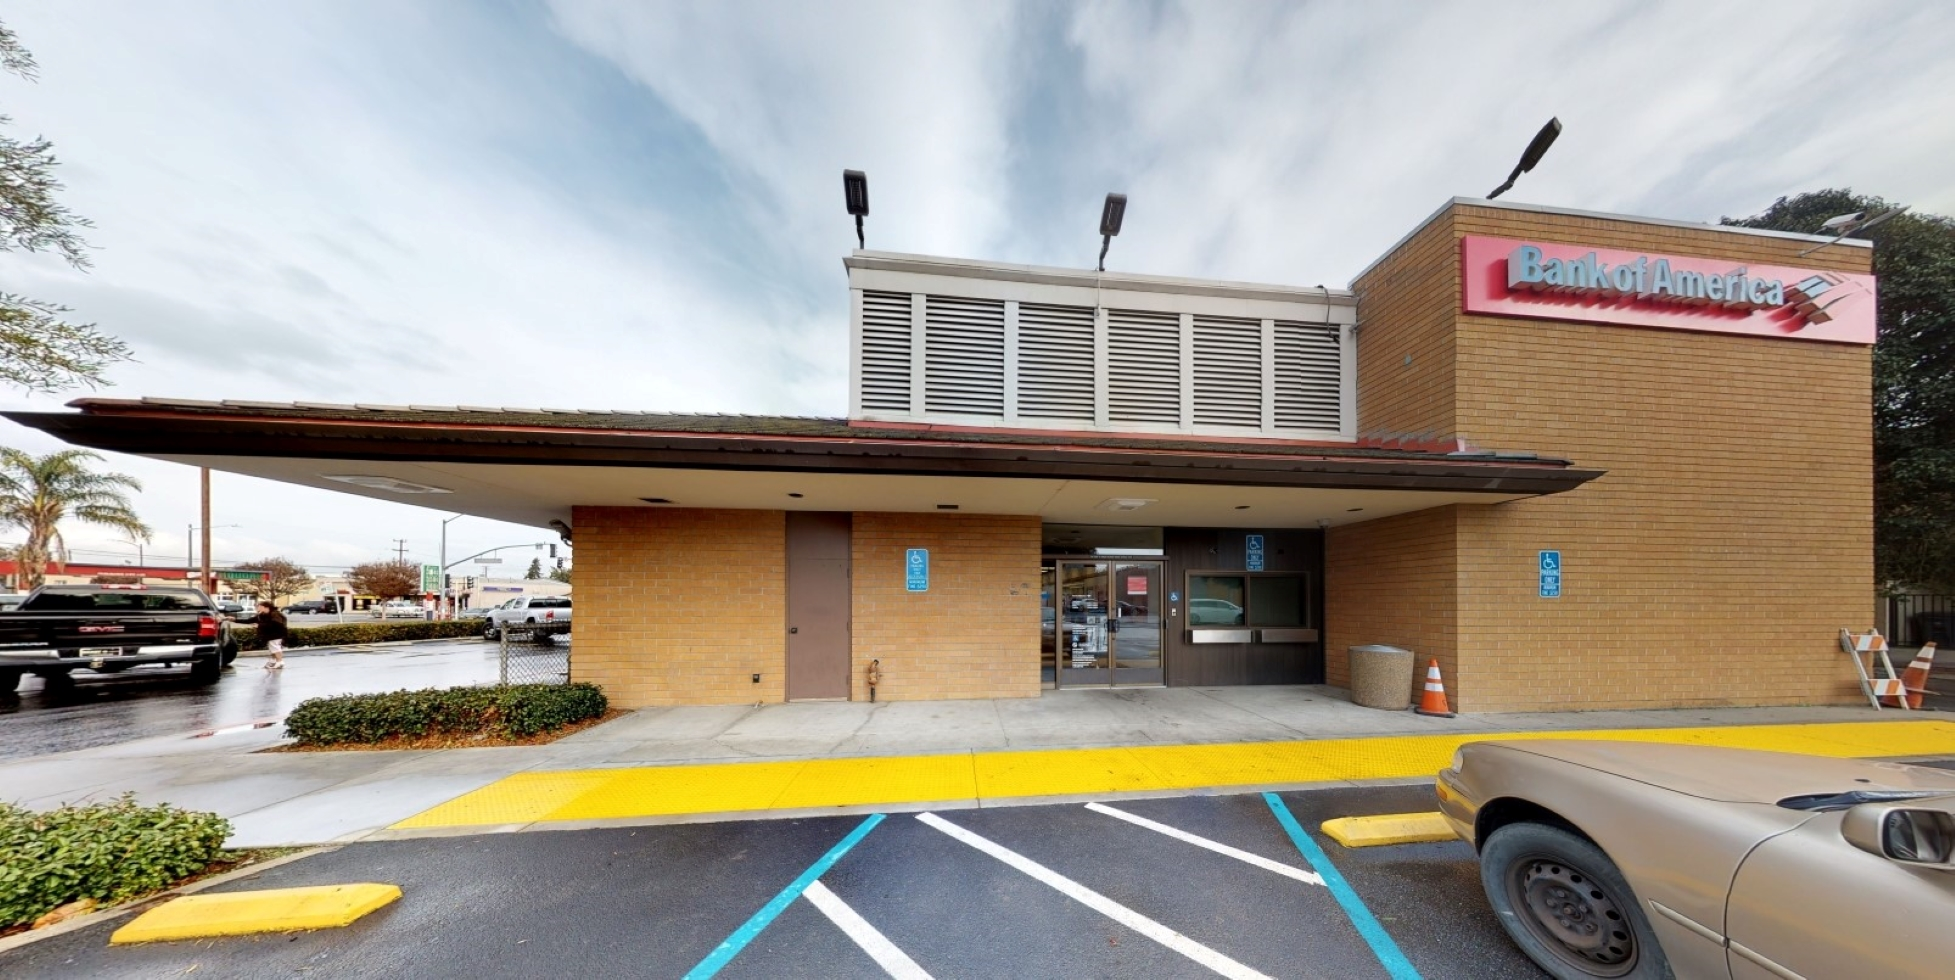 Bank of America financial center with walk-up ATM | 320 San Benito St, Hollister, CA 95023